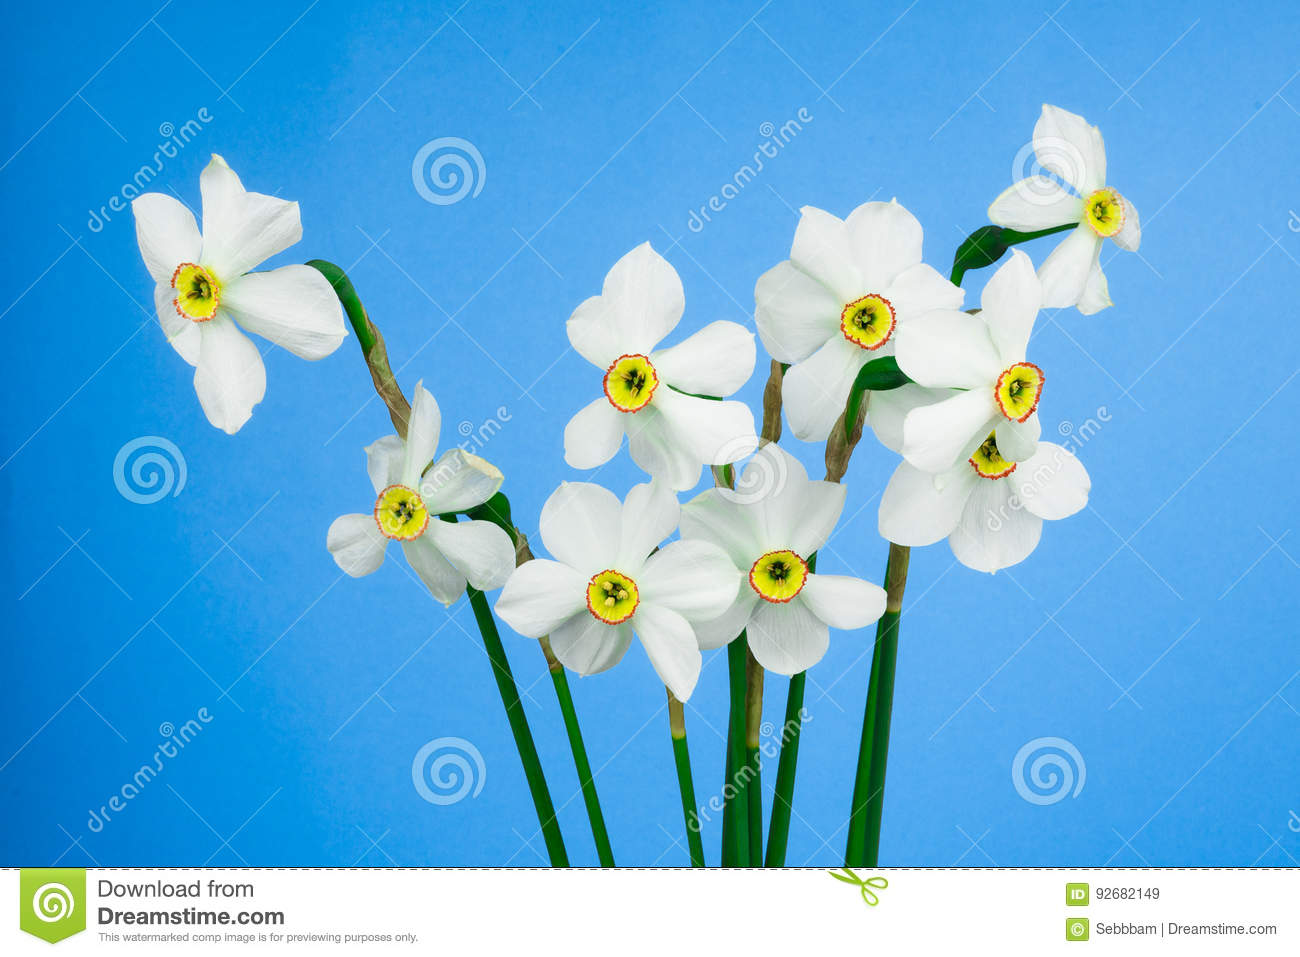 Narcissus Flowers On Blue Background Stock Image Image Of Blue